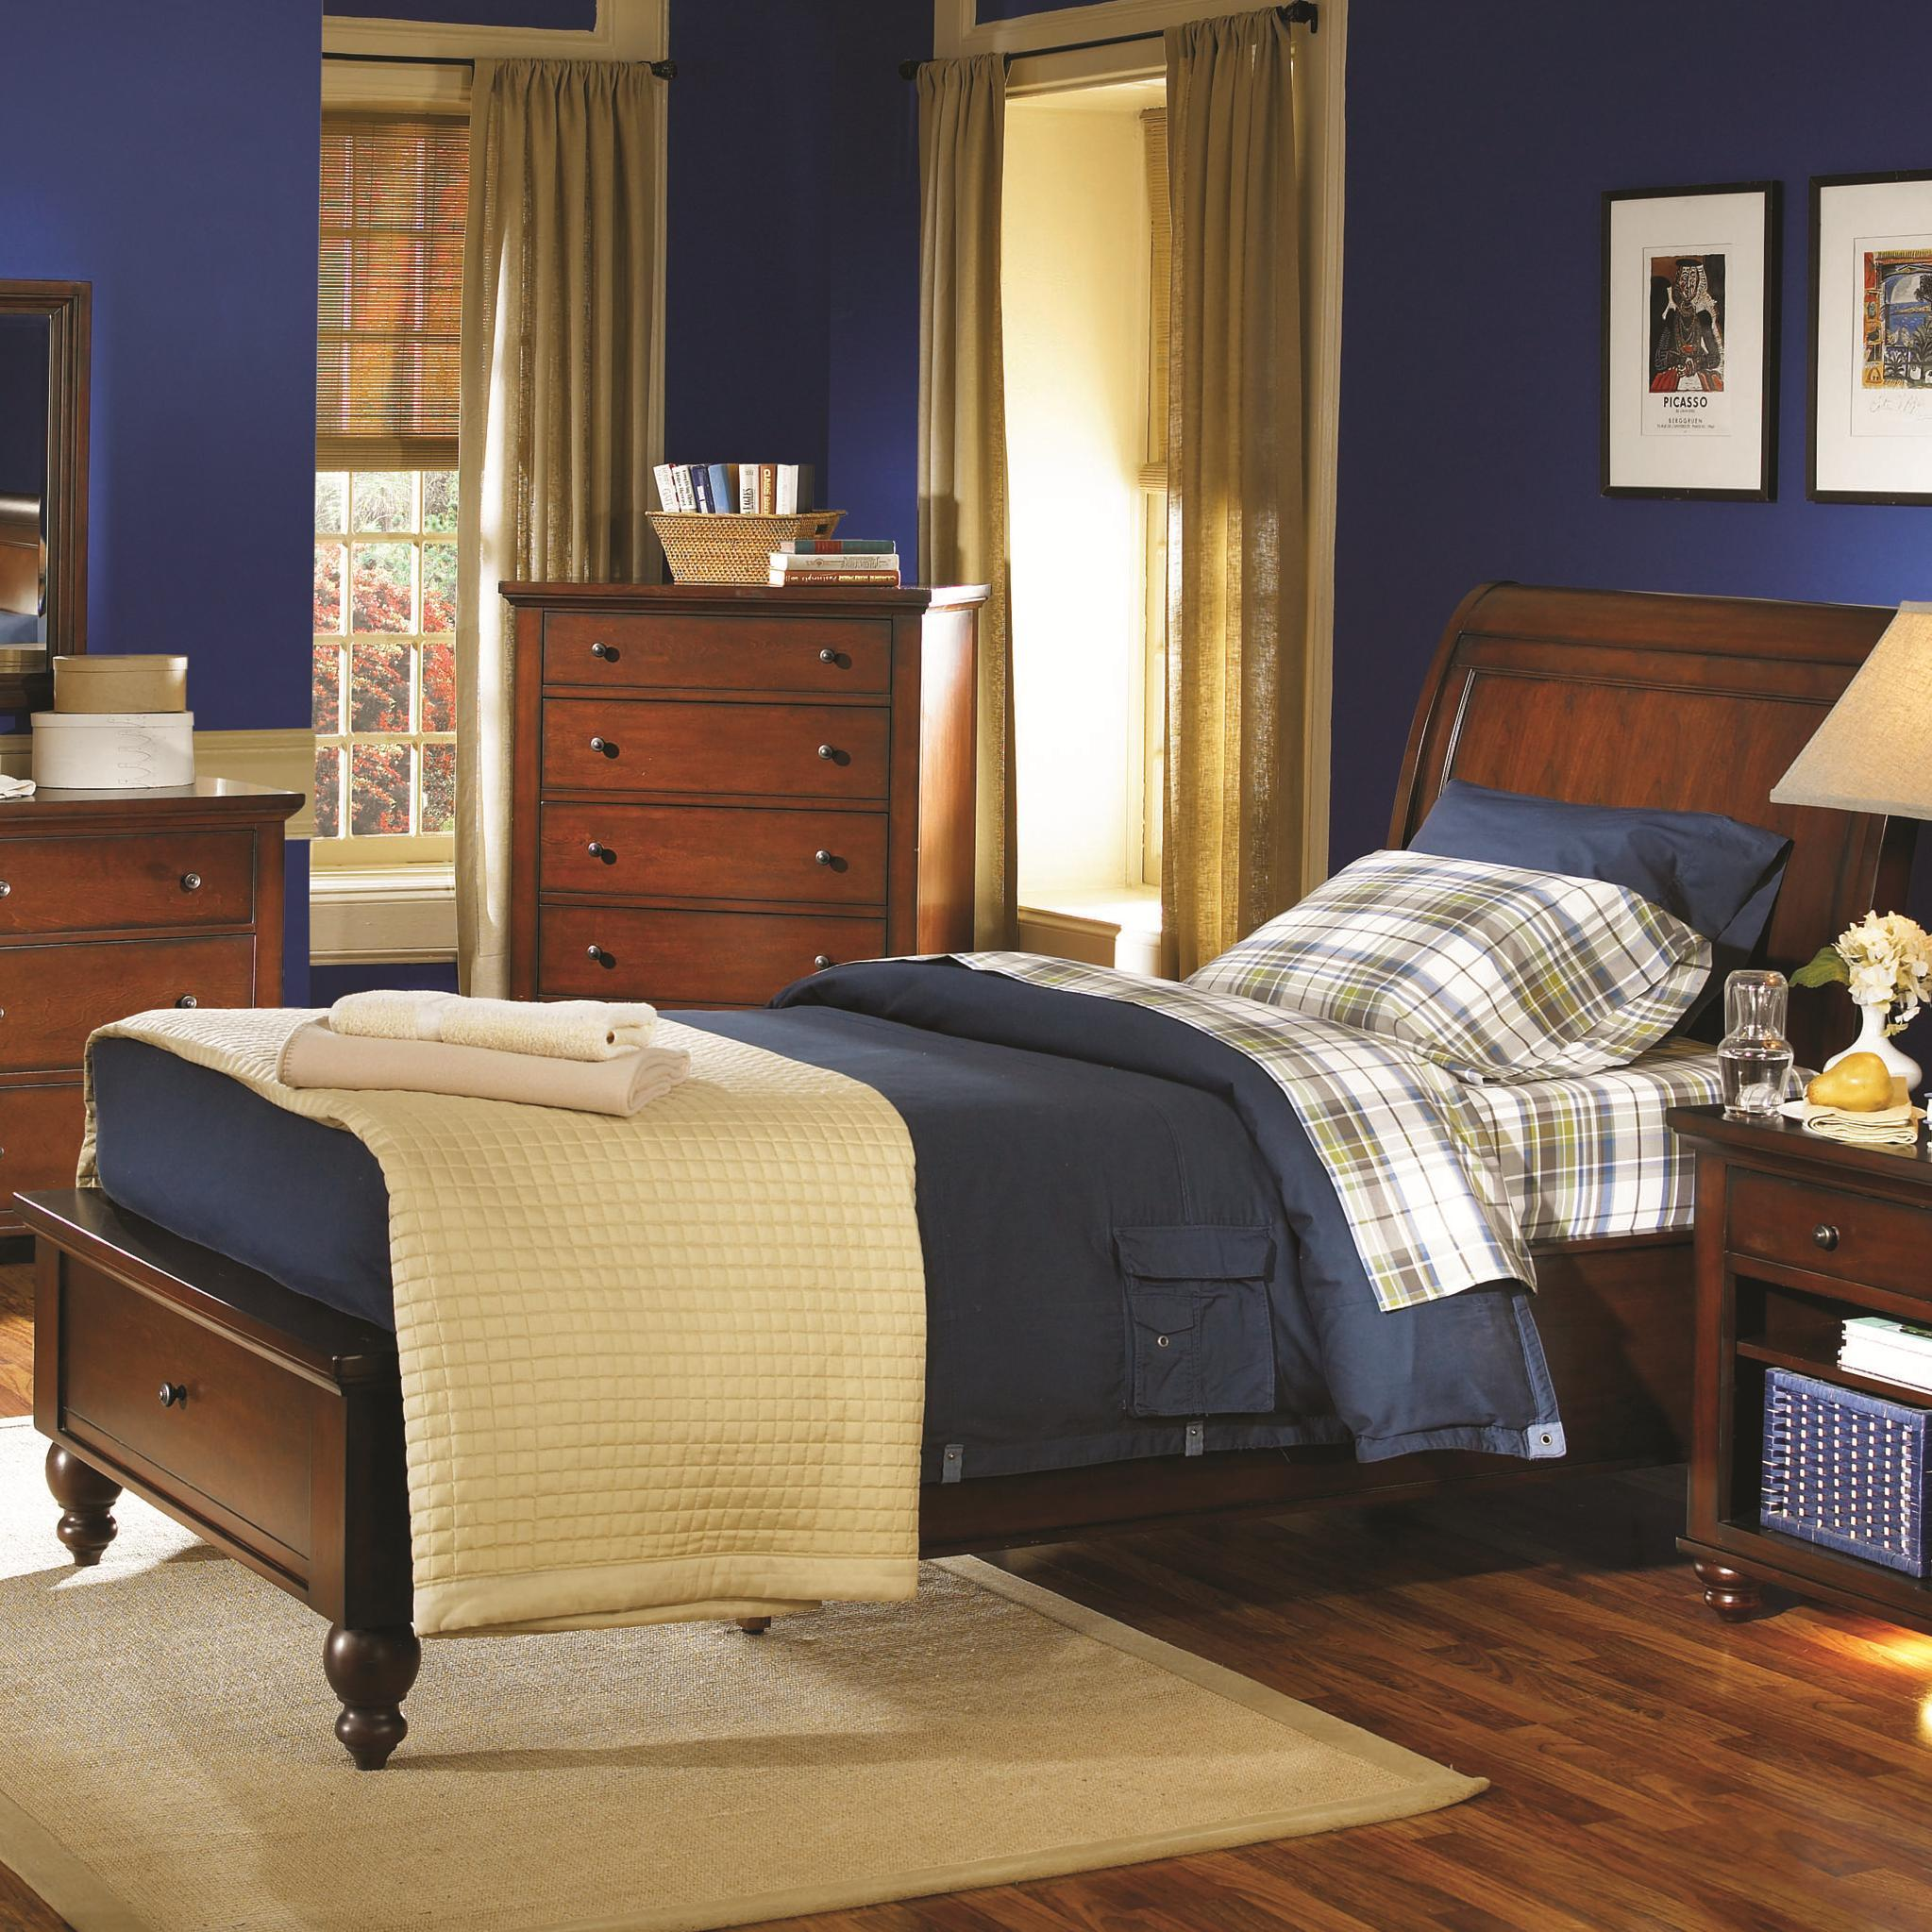 Morris Home Clinton Clinton Twin Size Storage Bed - Item Number: ICB-500-BCH+503D+502